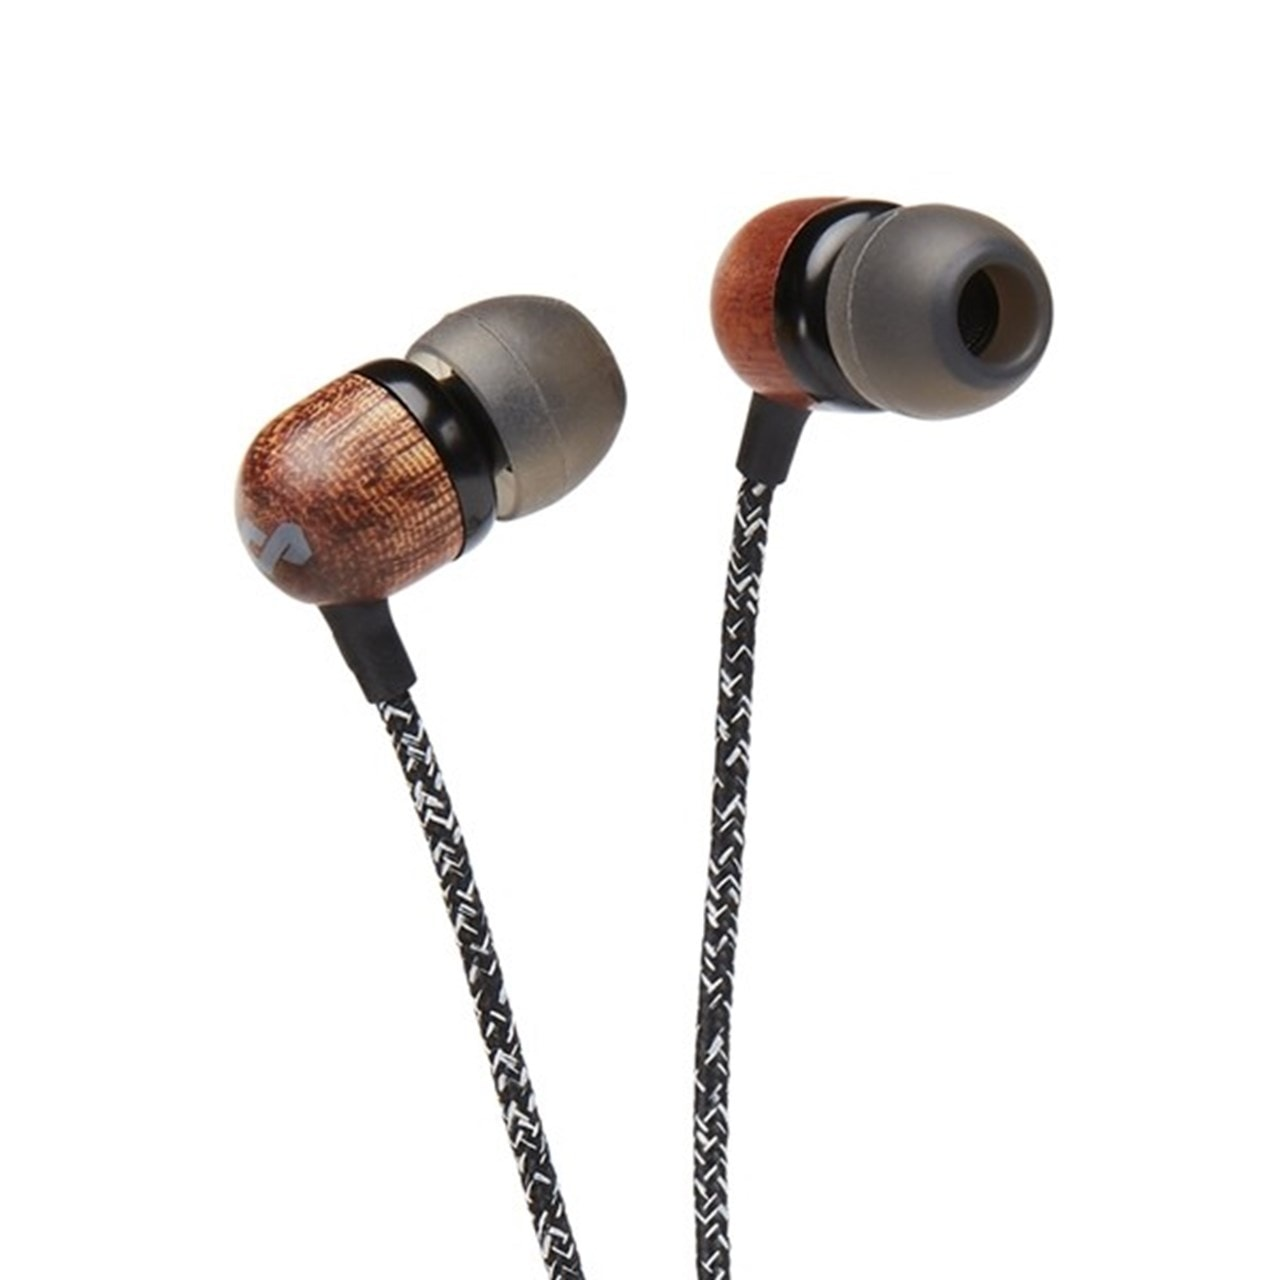 House Of Marley Smile Jamaica BT 2 Signature Black Bluetooth Earphones - 2